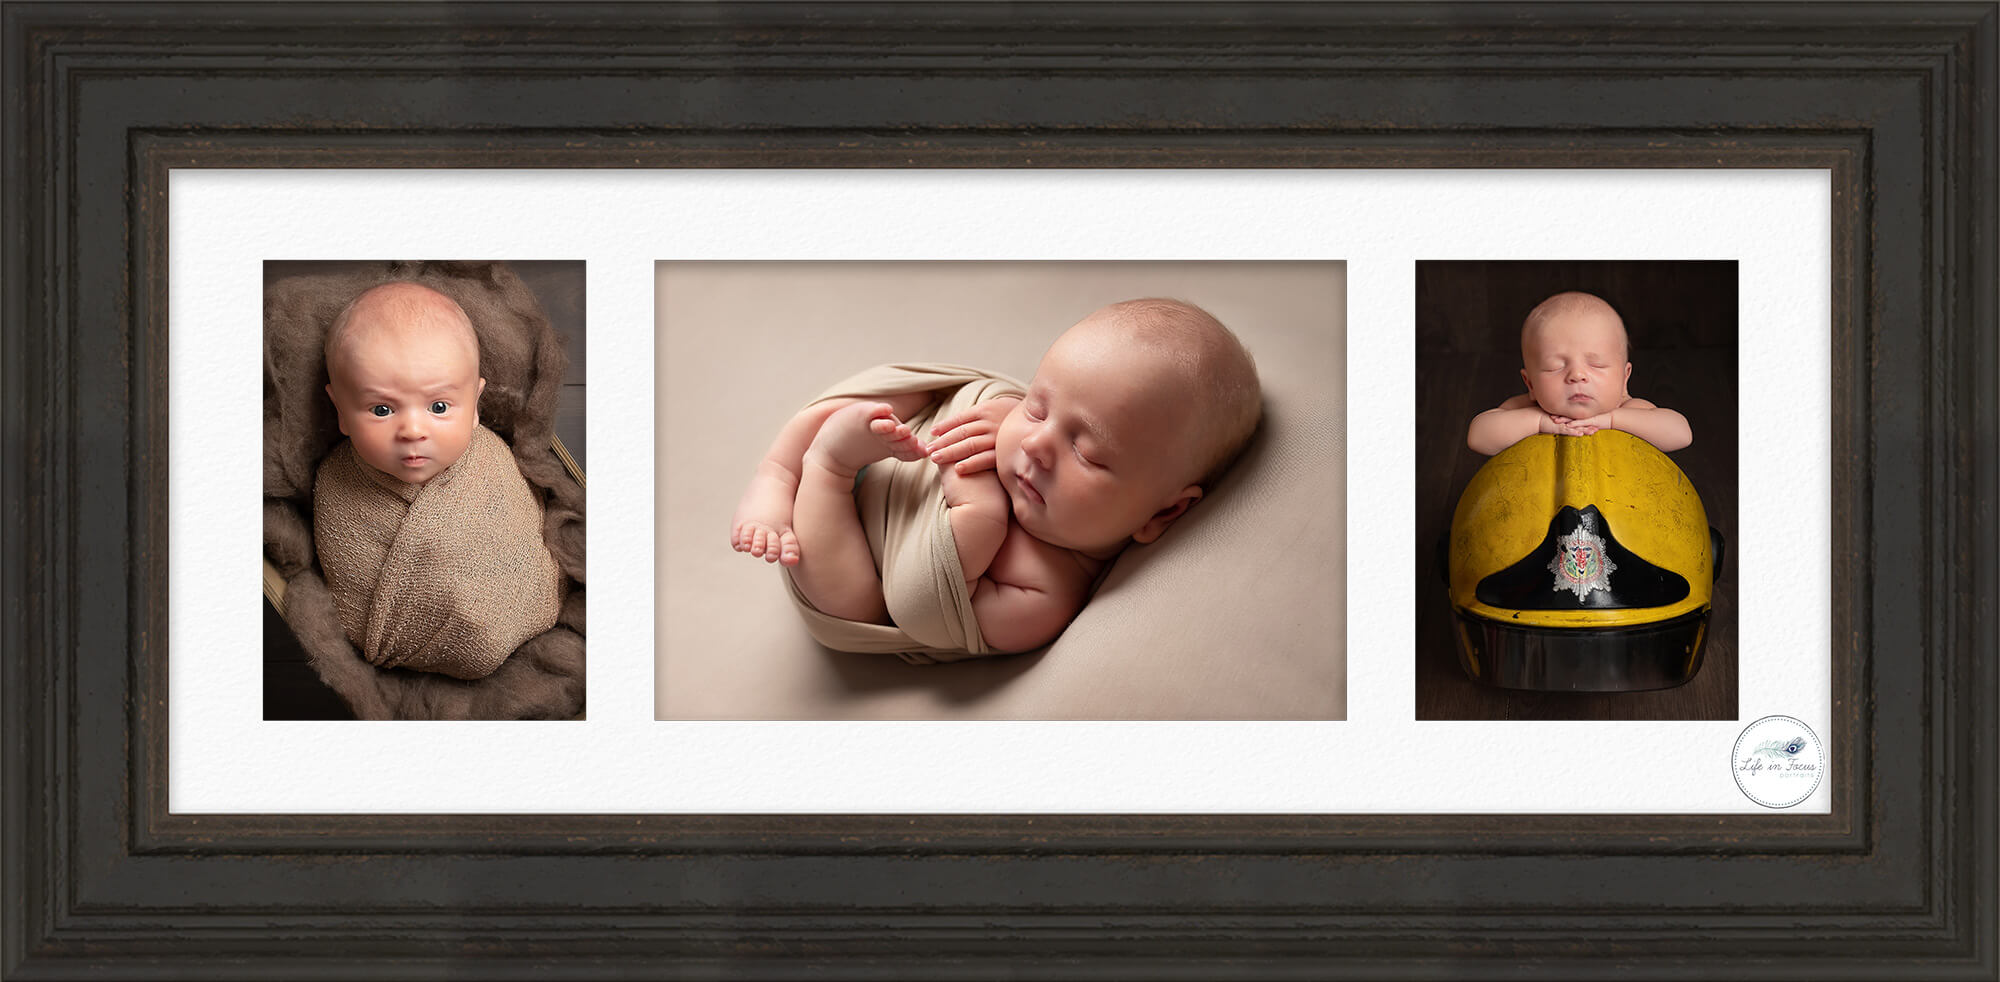 framed baby portraits 3 photos of firefighter's newborn baby boy Life in Focus Portraits newborn baby photography studio Rhu Helensburgh